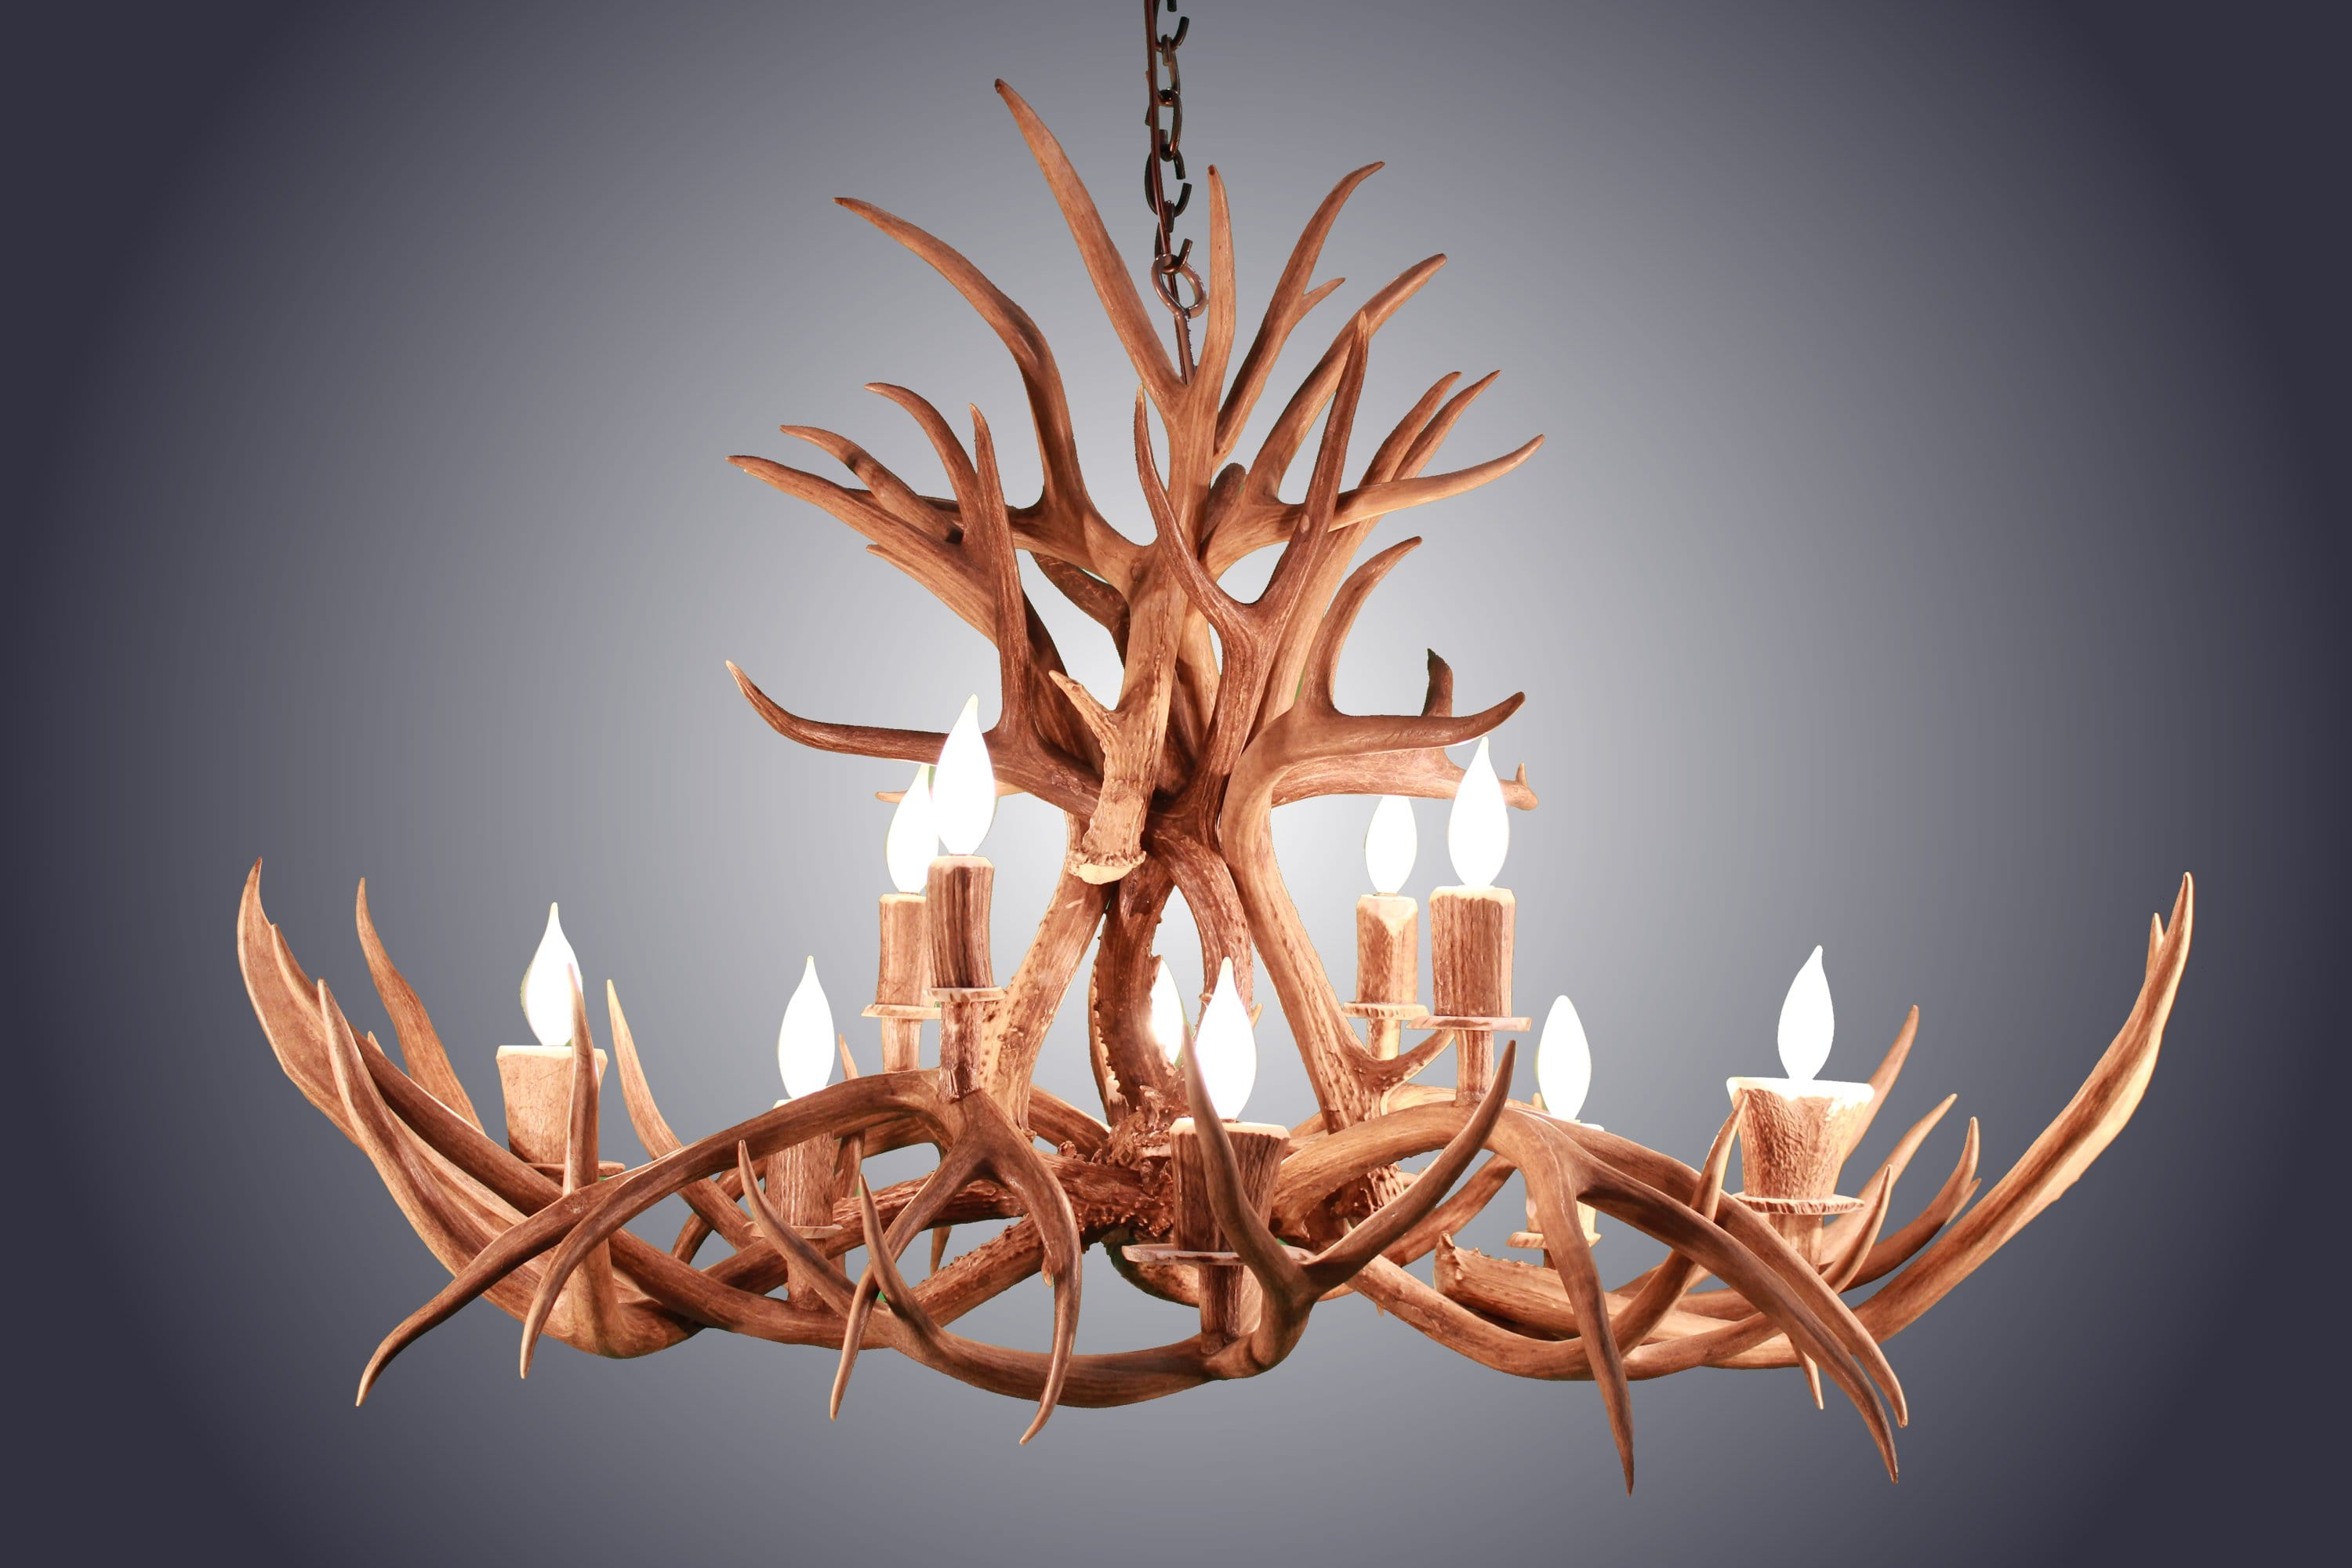 10 light oblong inverted mule deer antler chandelier sku 77 10 light oblong inverted mule deer antler chandelier sku 77 antlerworx aloadofball Images